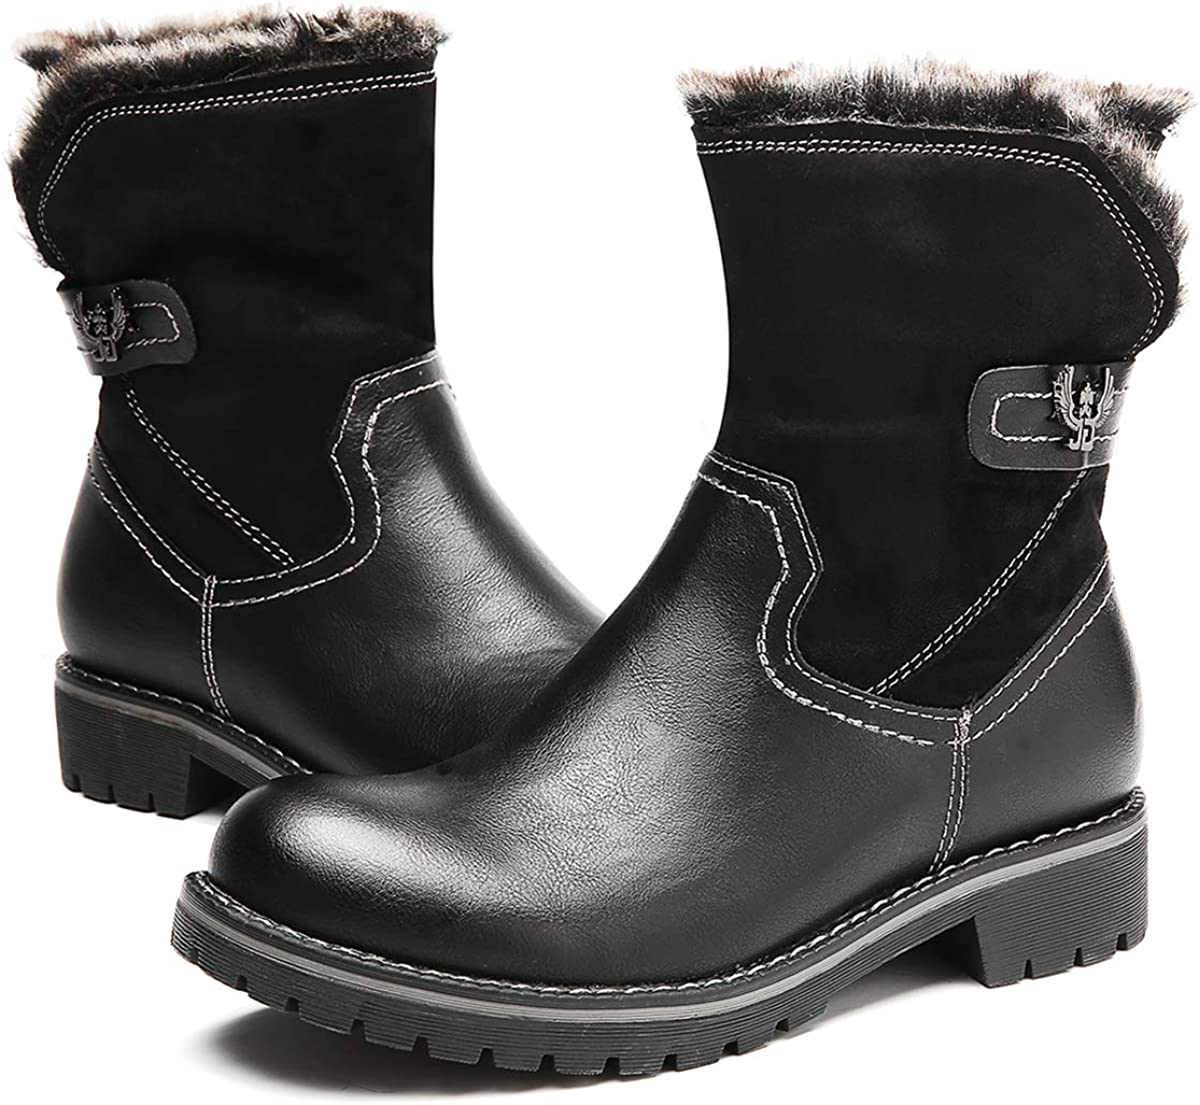 Warm Leather Boots Women